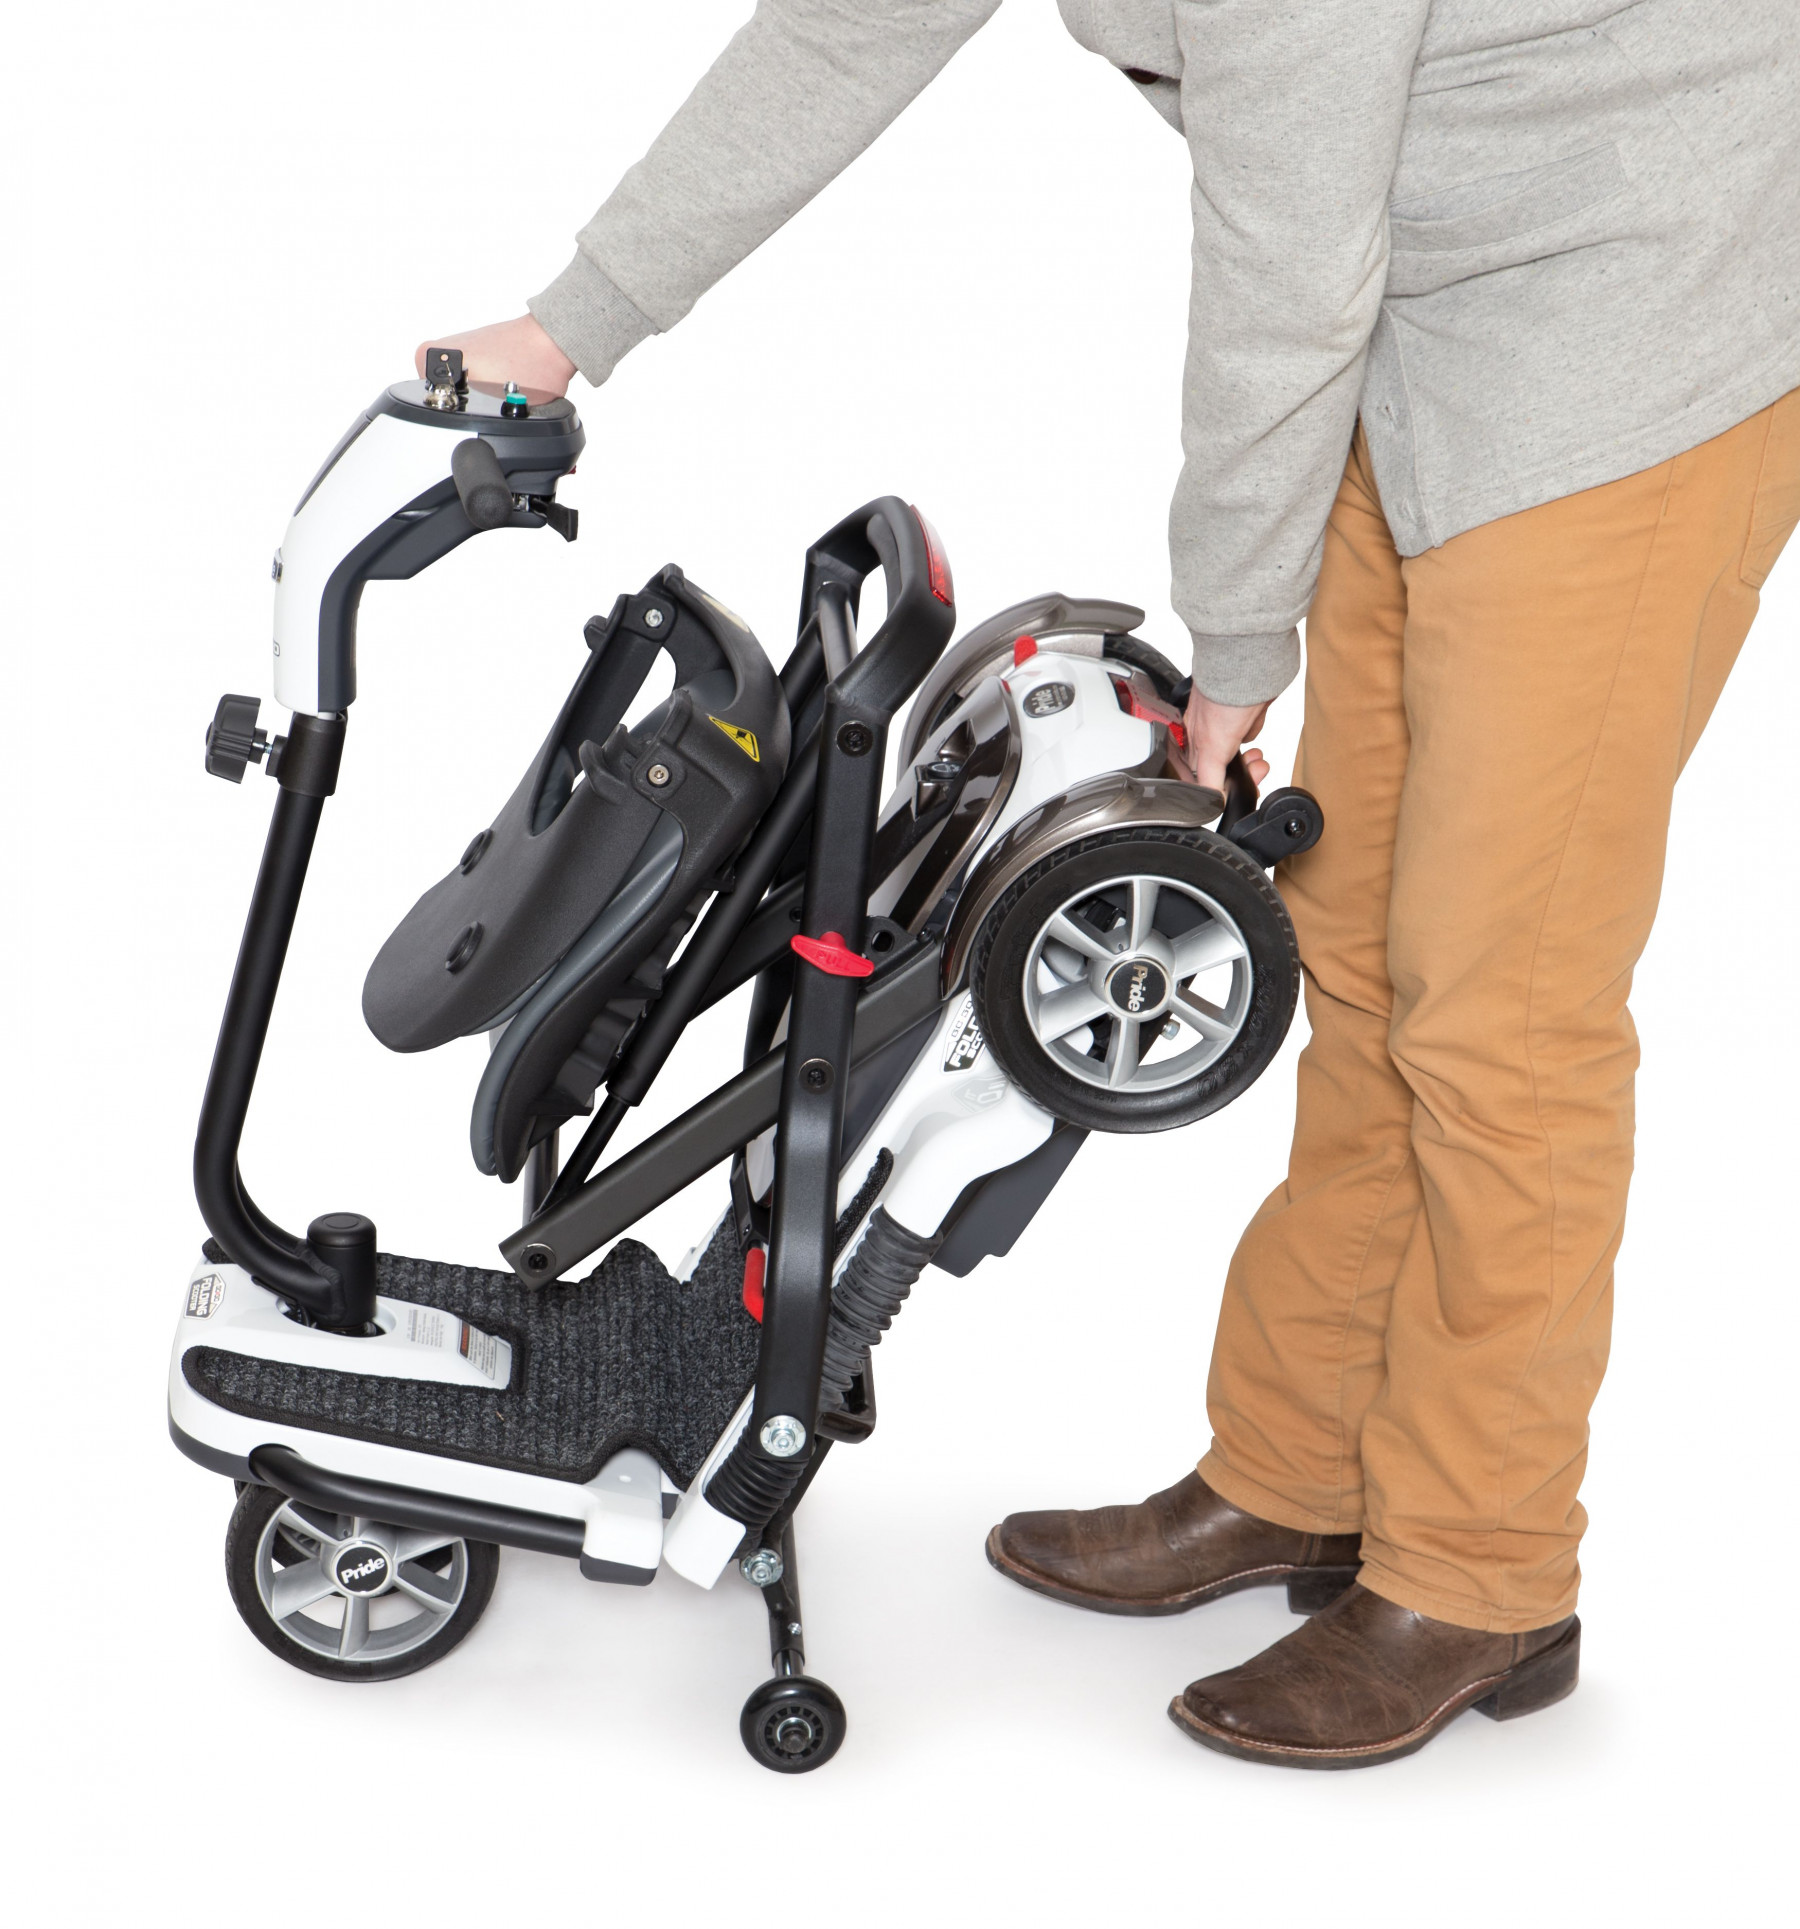 Pride go go folding scooter s19 best price online tax for Go go motorized scooter